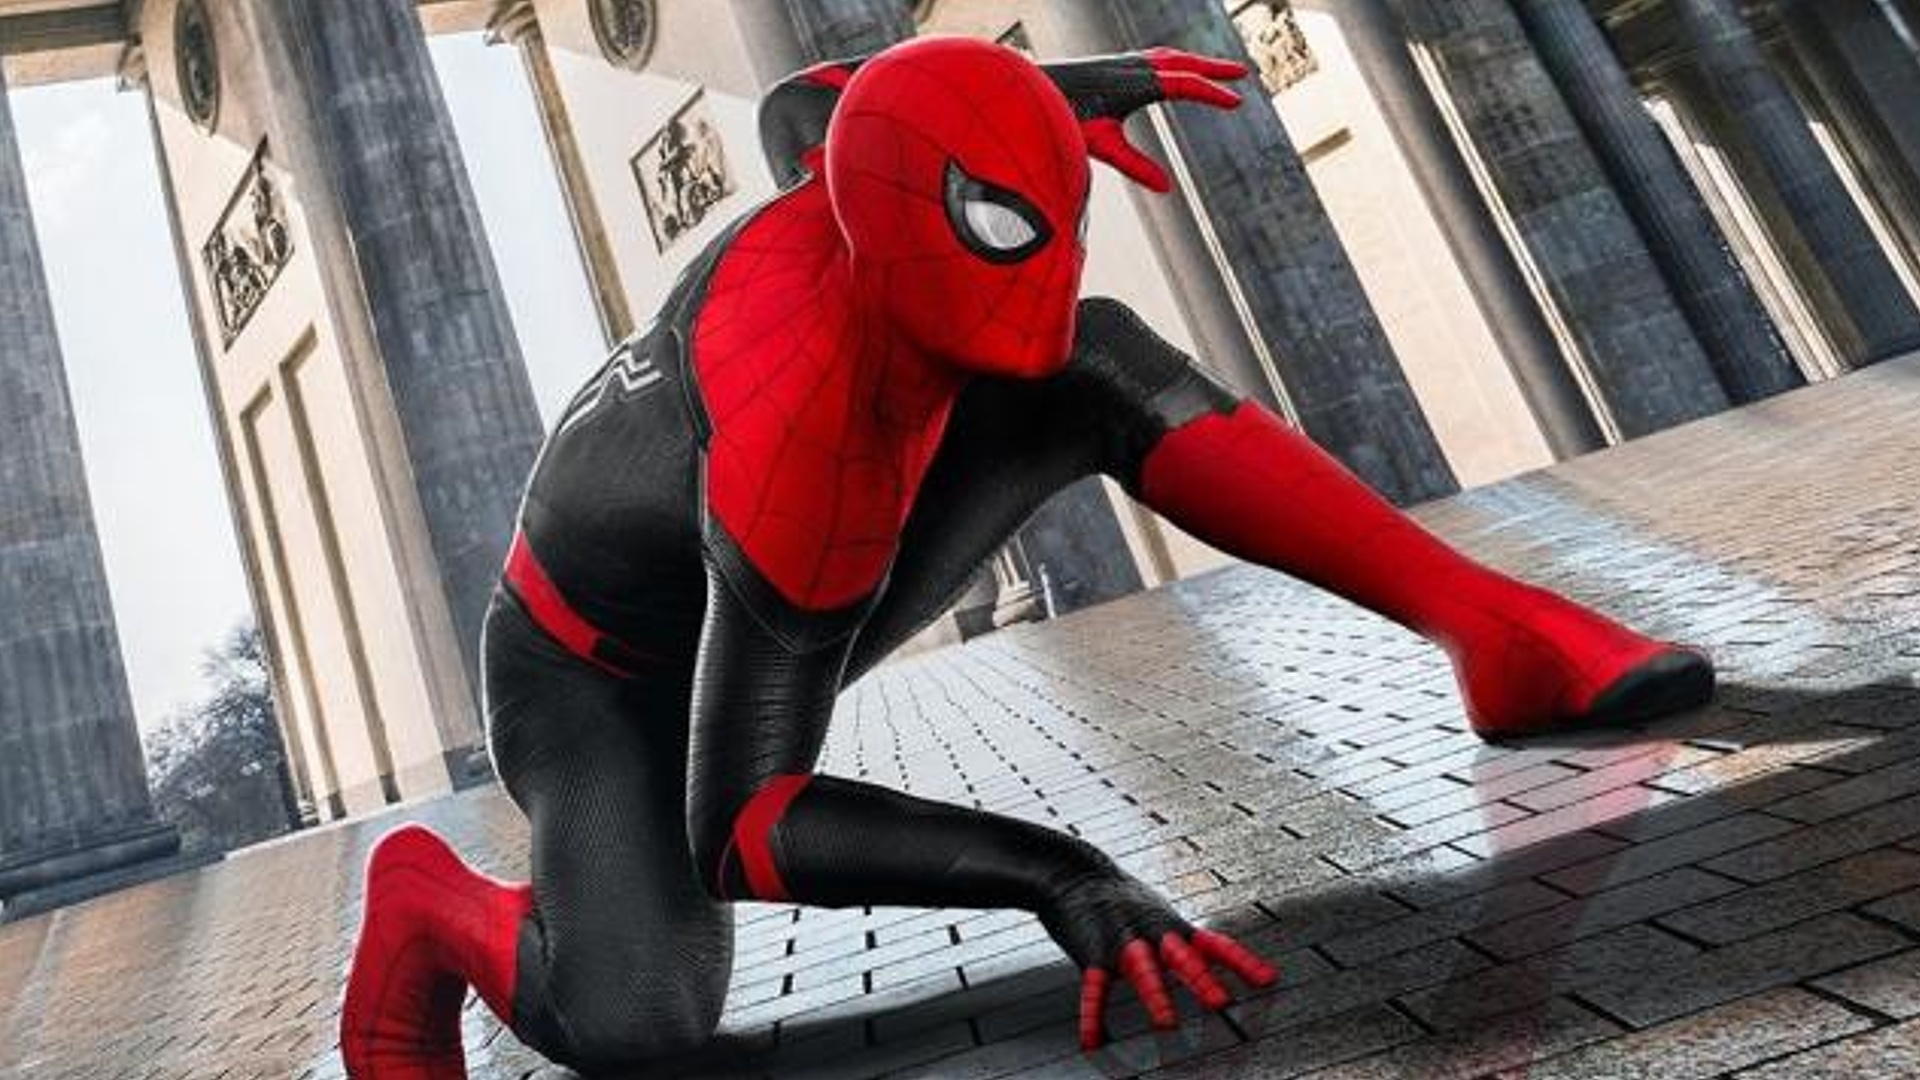 Spider-Man Sony Marvel Studios accordo